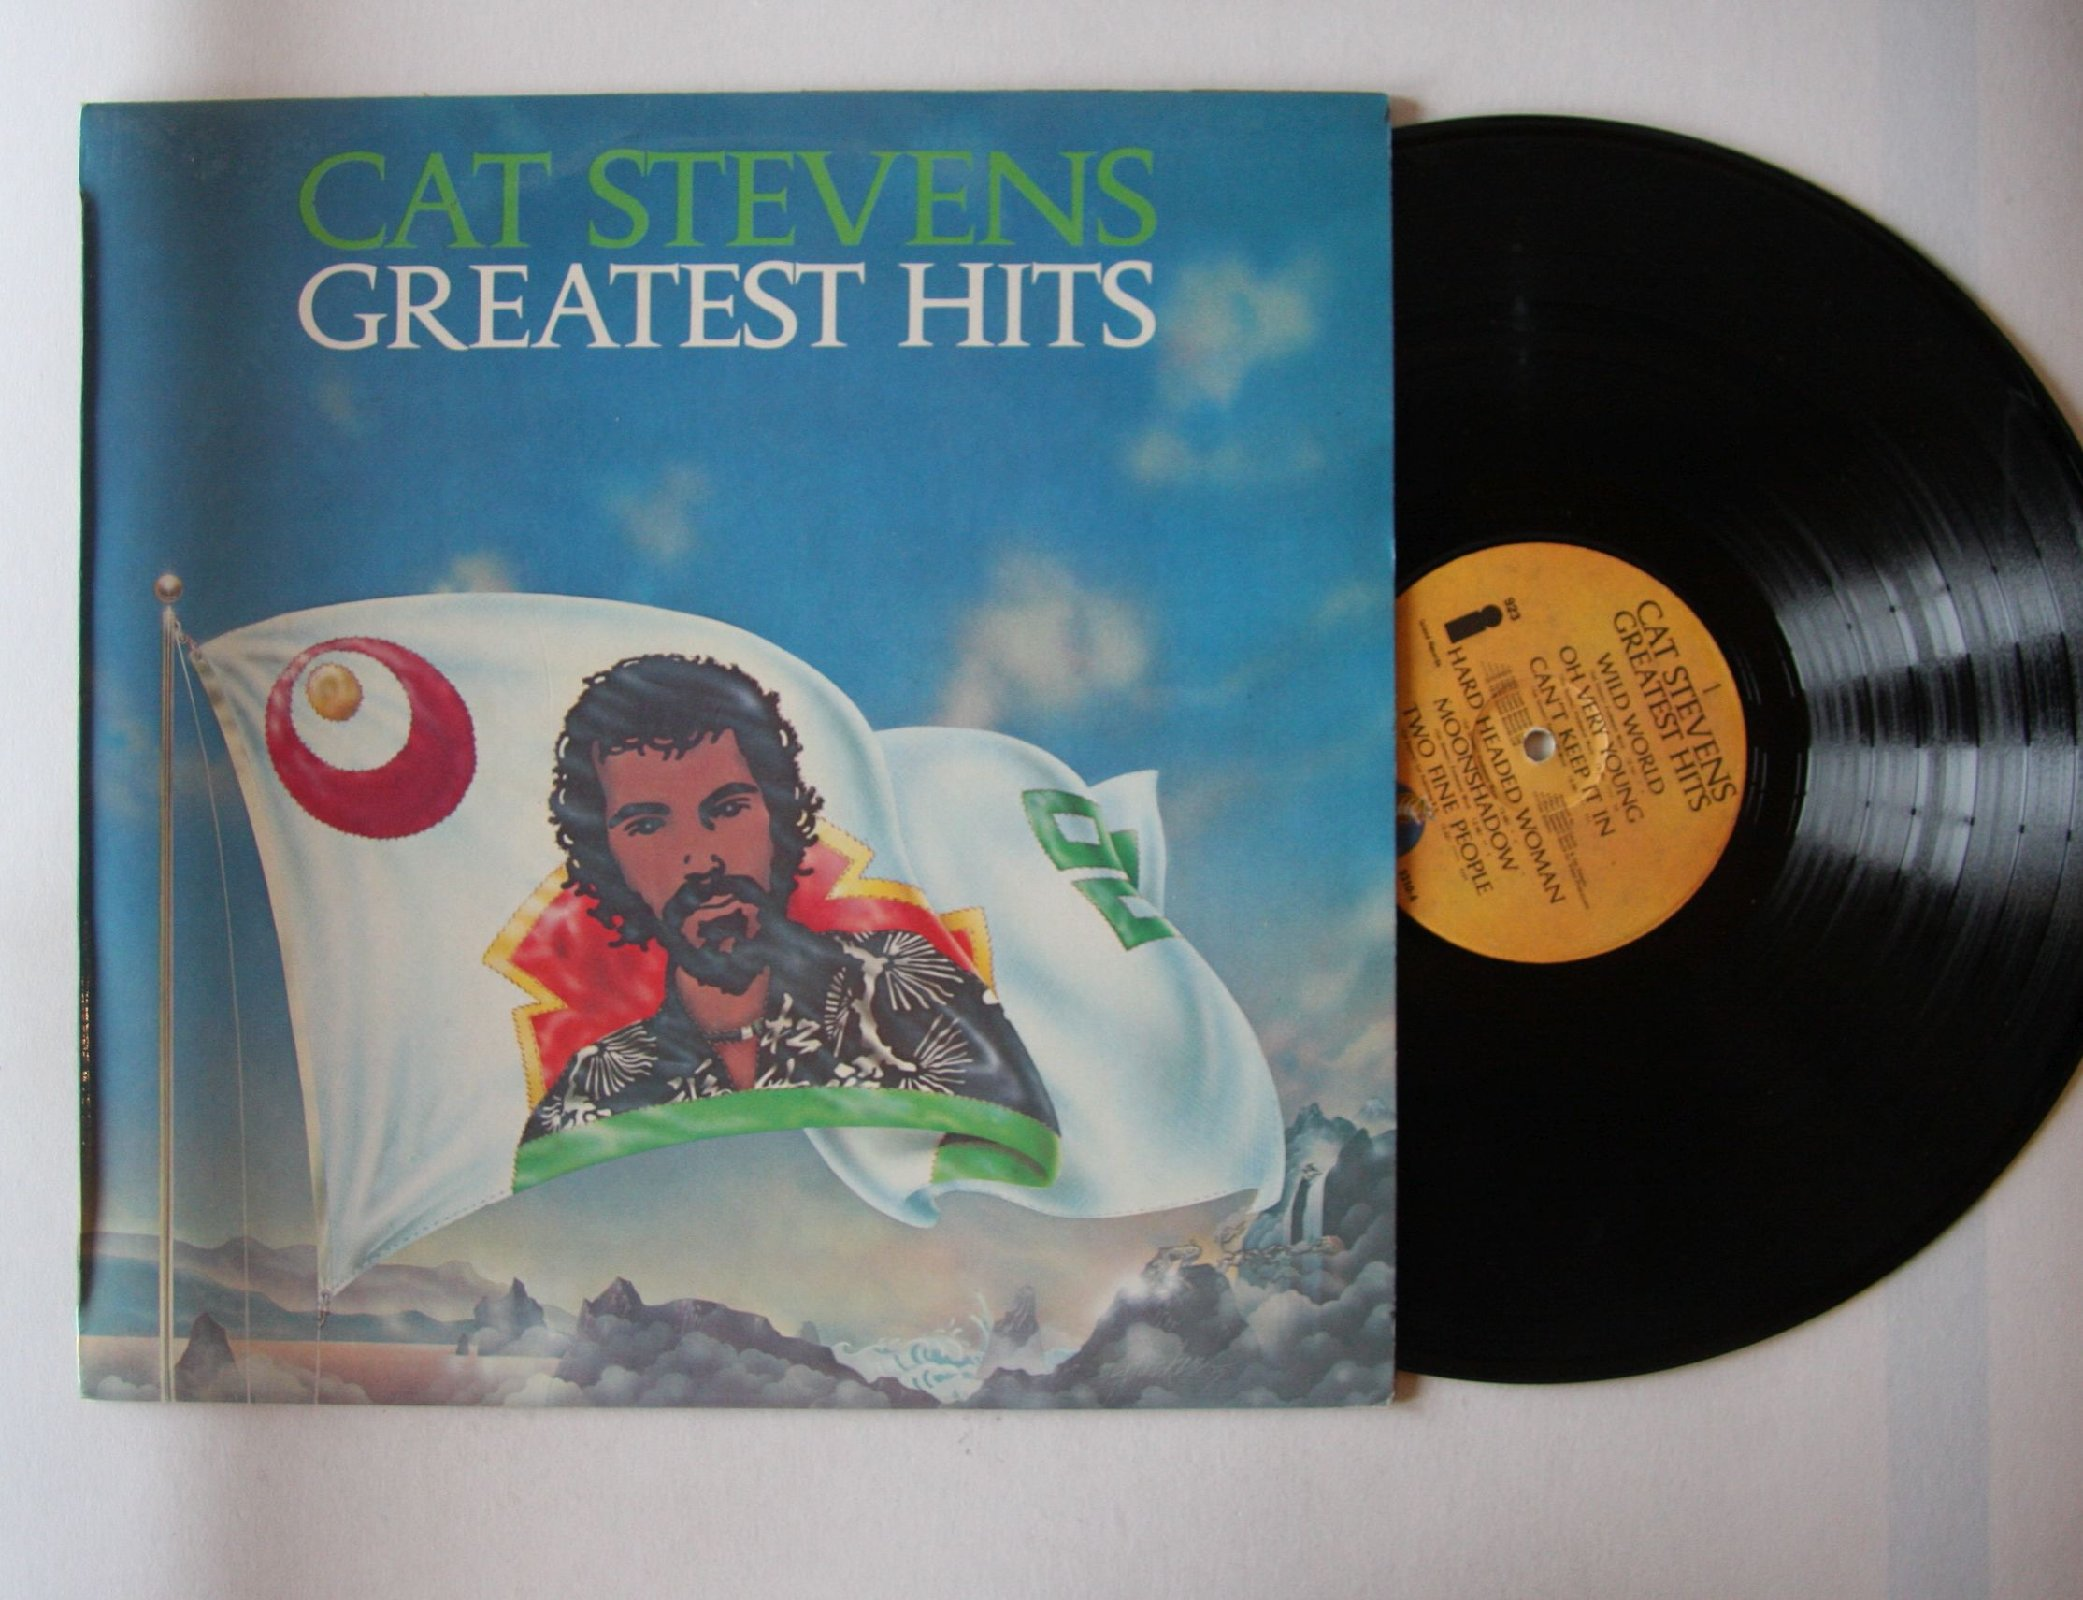 Cat Stevens Greatest Hits Records Lps Vinyl And Cds